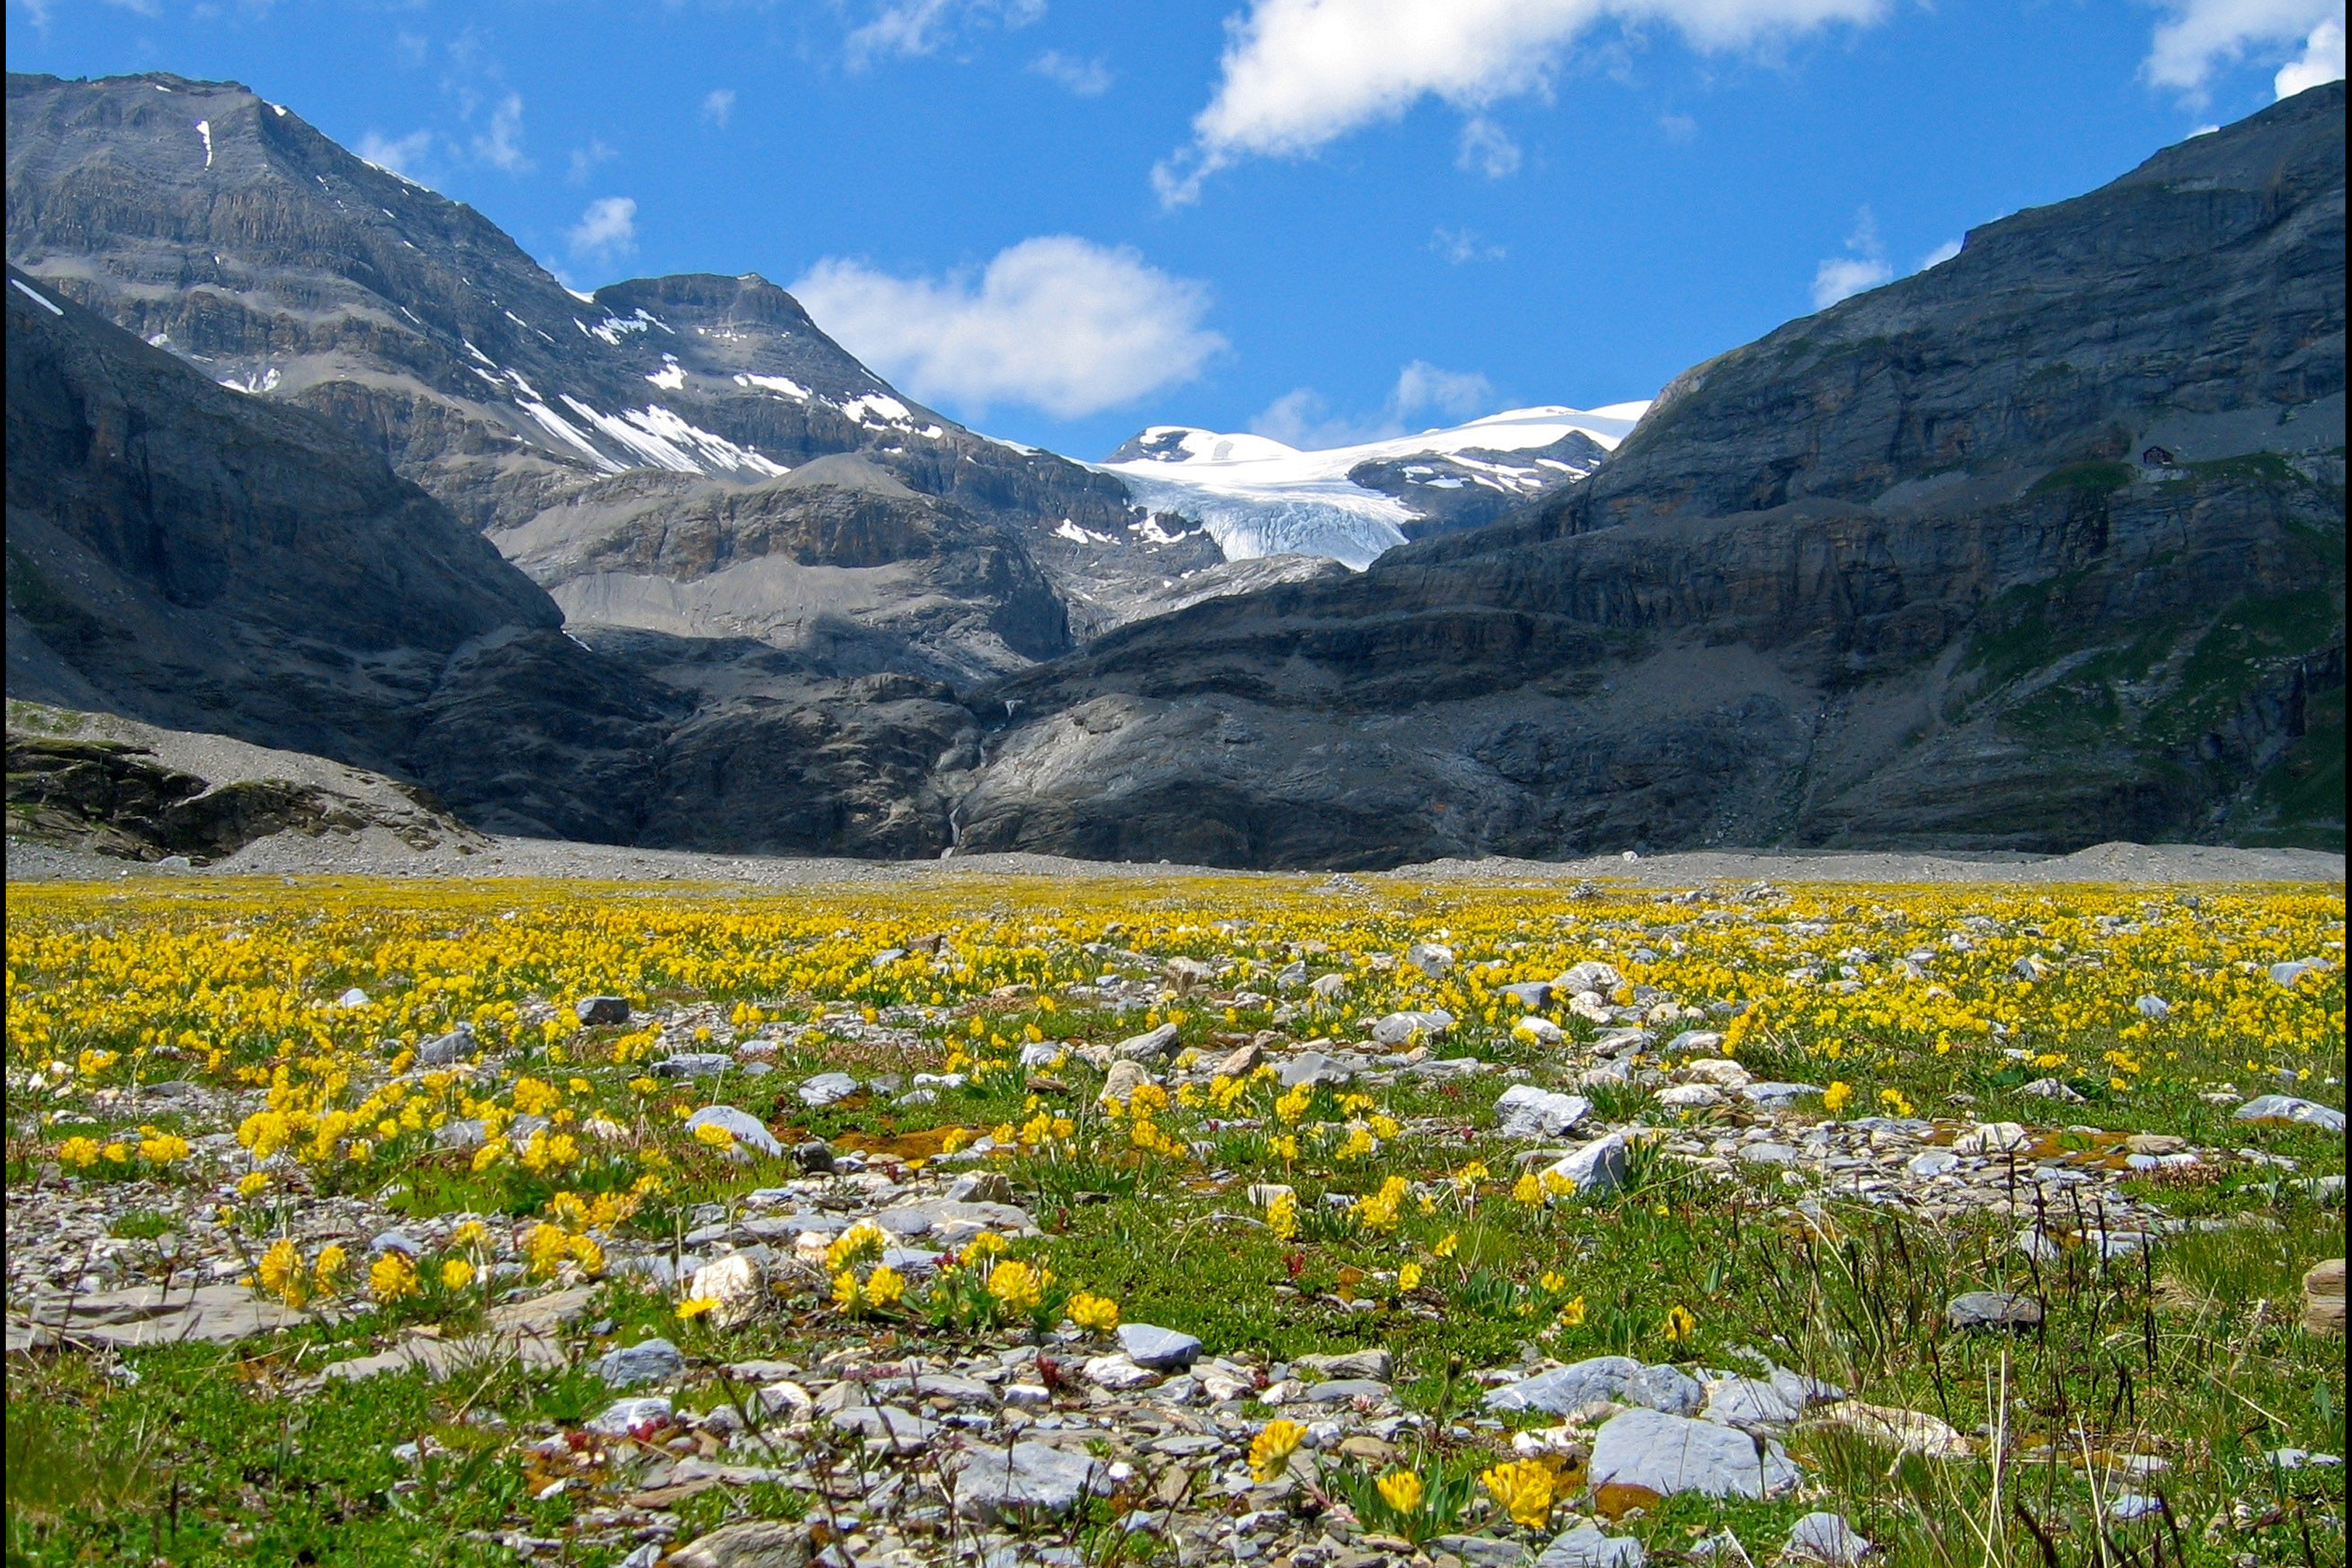 A field full of yellow flowers against mountains